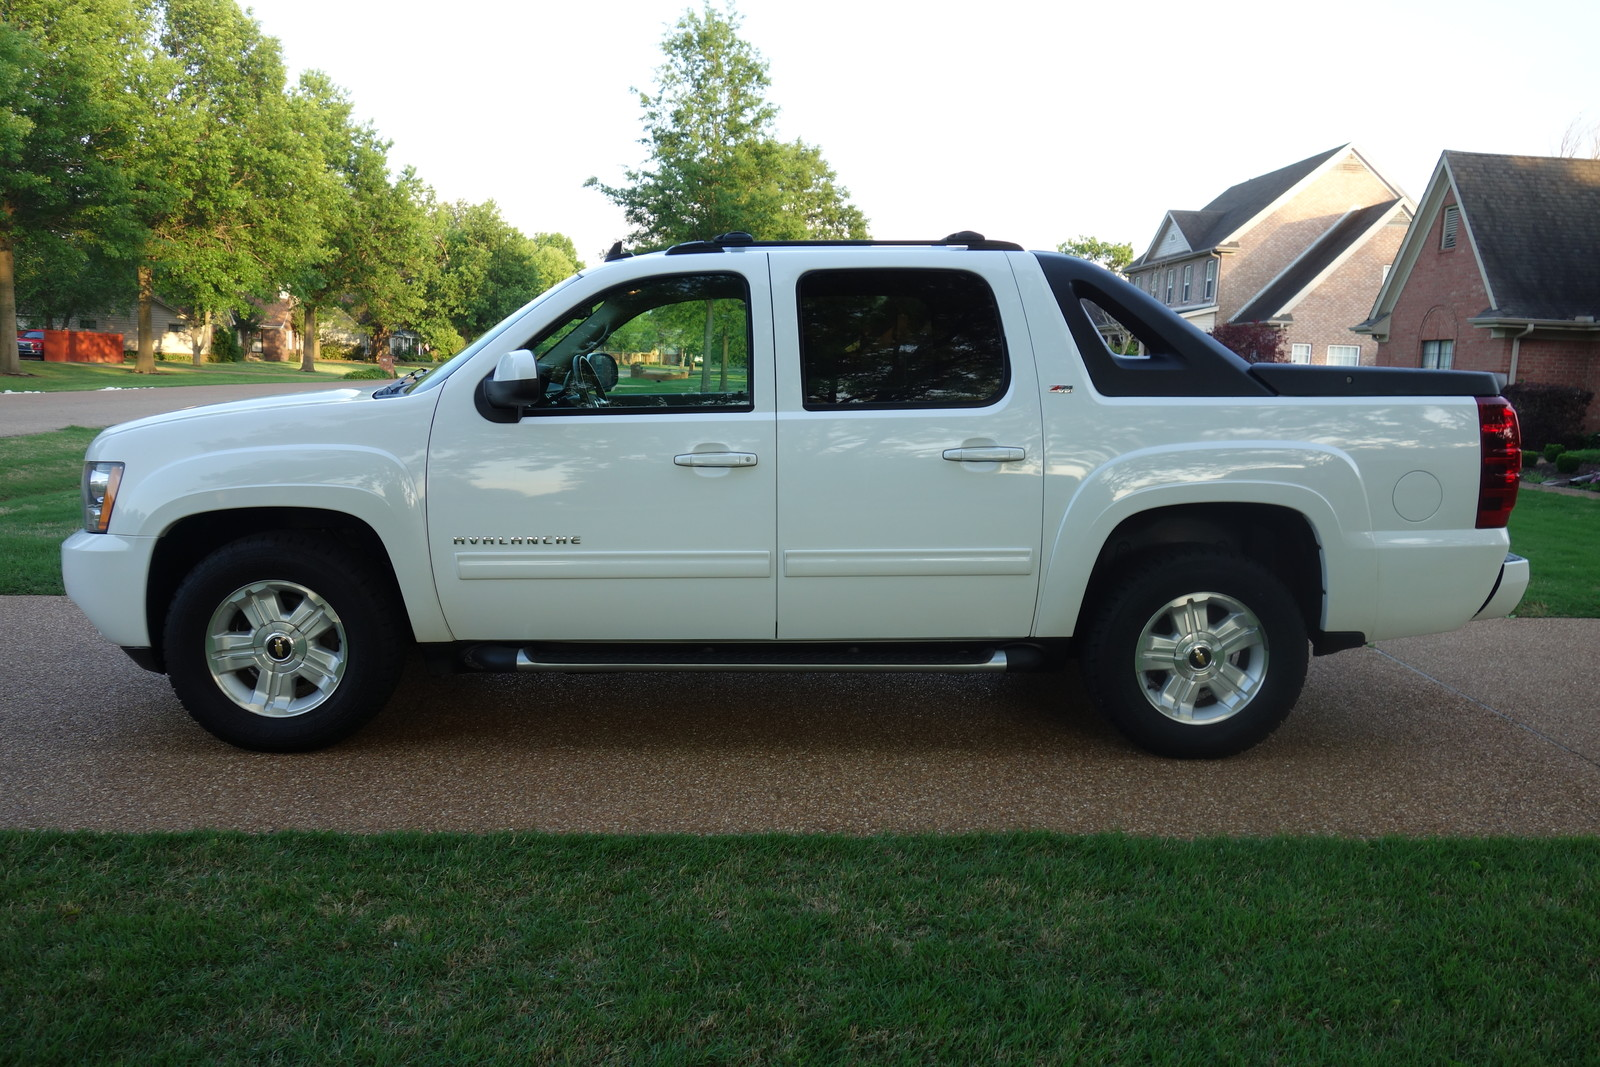 arkansas 1owner nonsmoker z71 4x4 rear camera heated seats perfect carfax used chevrolet. Black Bedroom Furniture Sets. Home Design Ideas